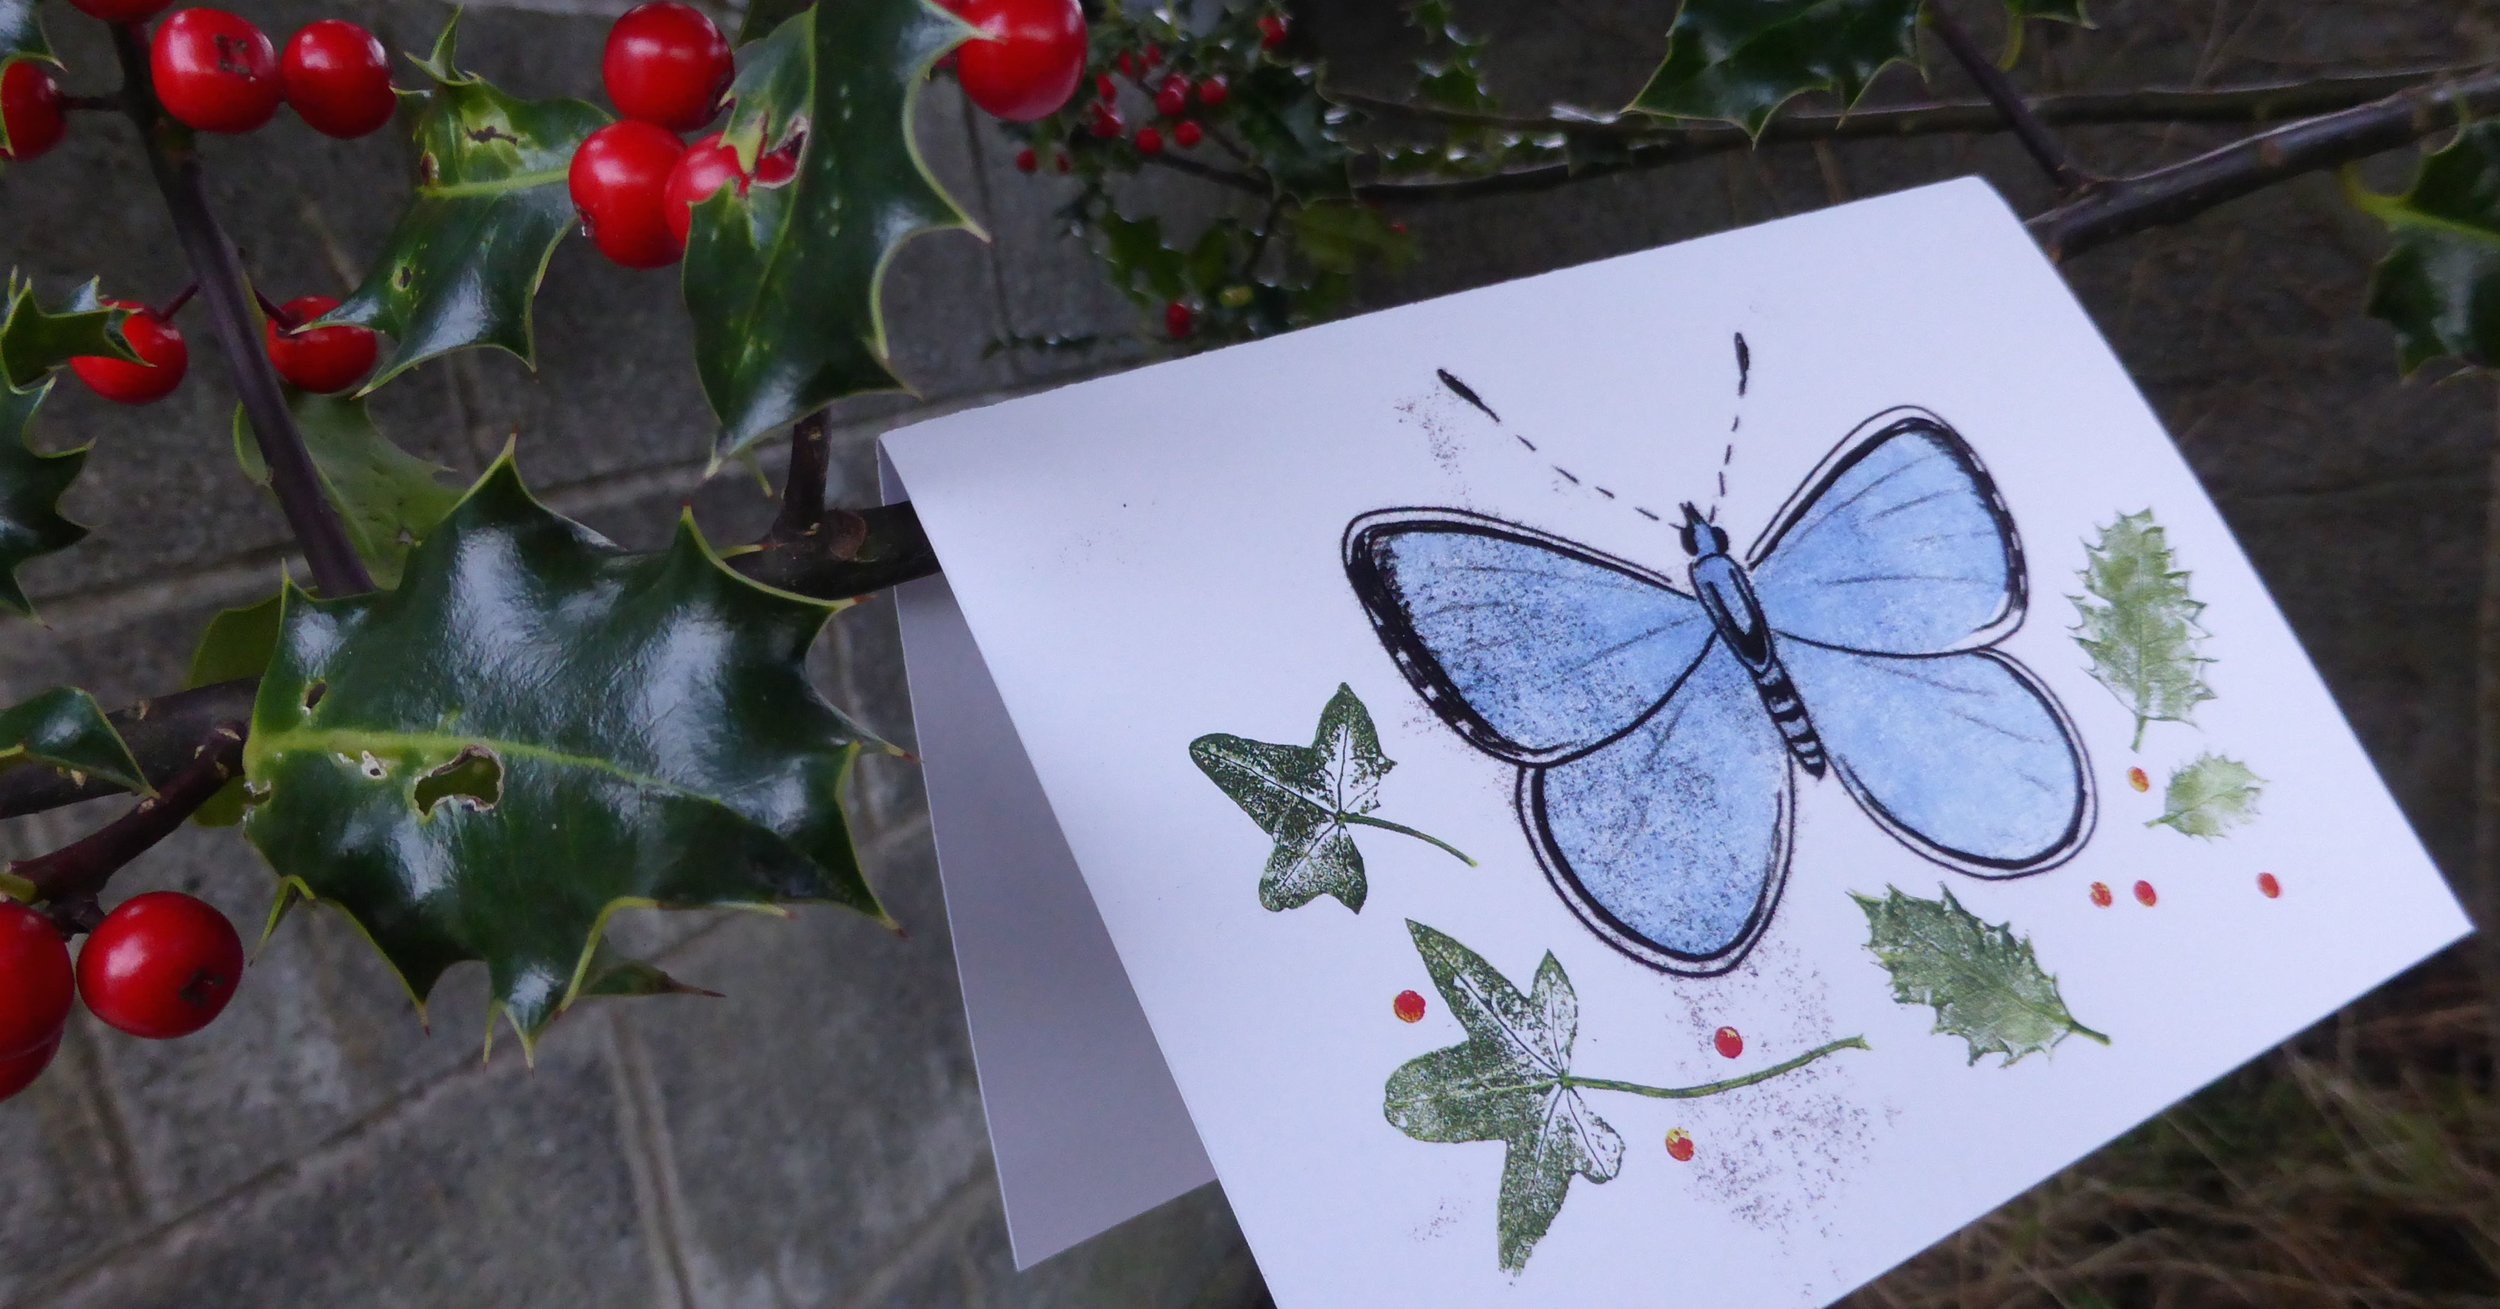 Holly Blue Christmas Cards (based on monoprints), 2016.Featuring  Celastrina argiolus  and its foodplants, with a festive message about their natural history and conservation. A percentage was donated to OWLS Children's Nature Charity and Discovery Gospel Choir.